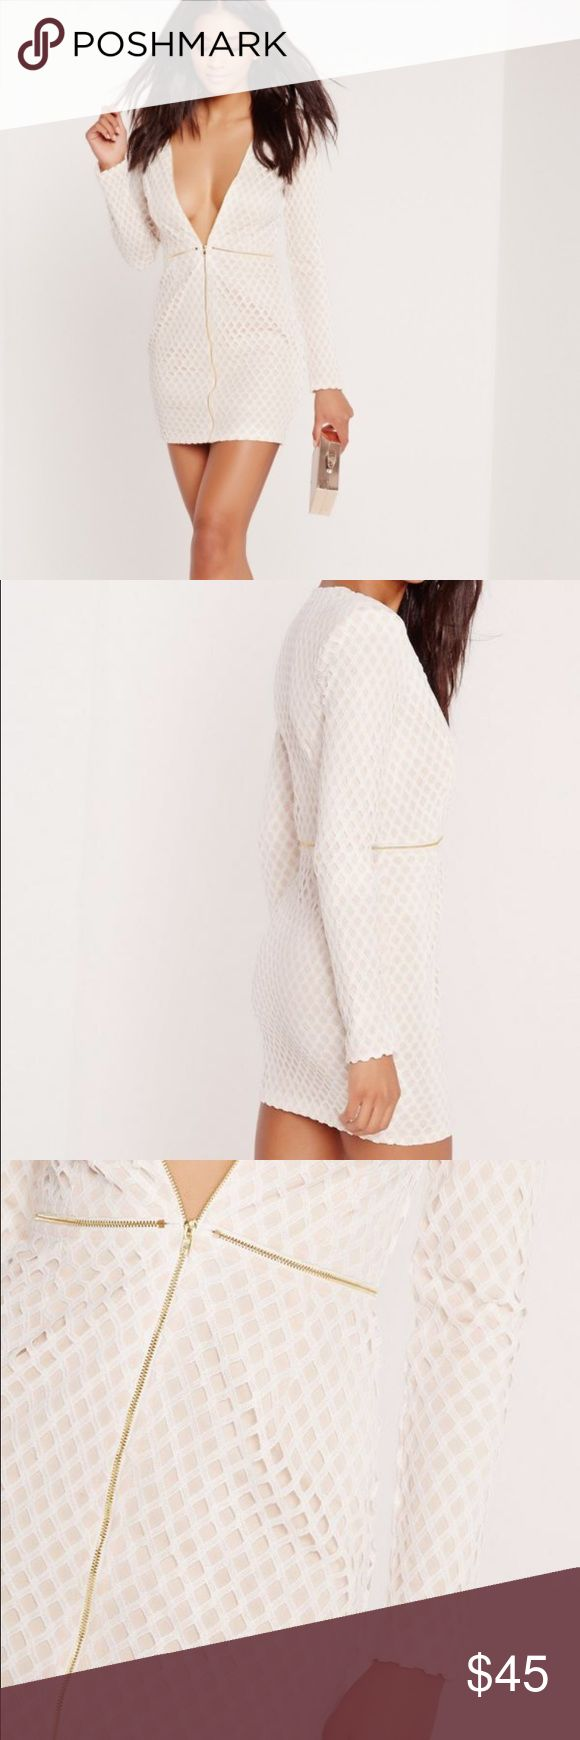 MISSGUIDED white Zip up dress Premium lattice lace zip up bodycon dress nude. Size 4 US. None stretchy material. Worn once, like new! No trades. Missguided Dresses Mini